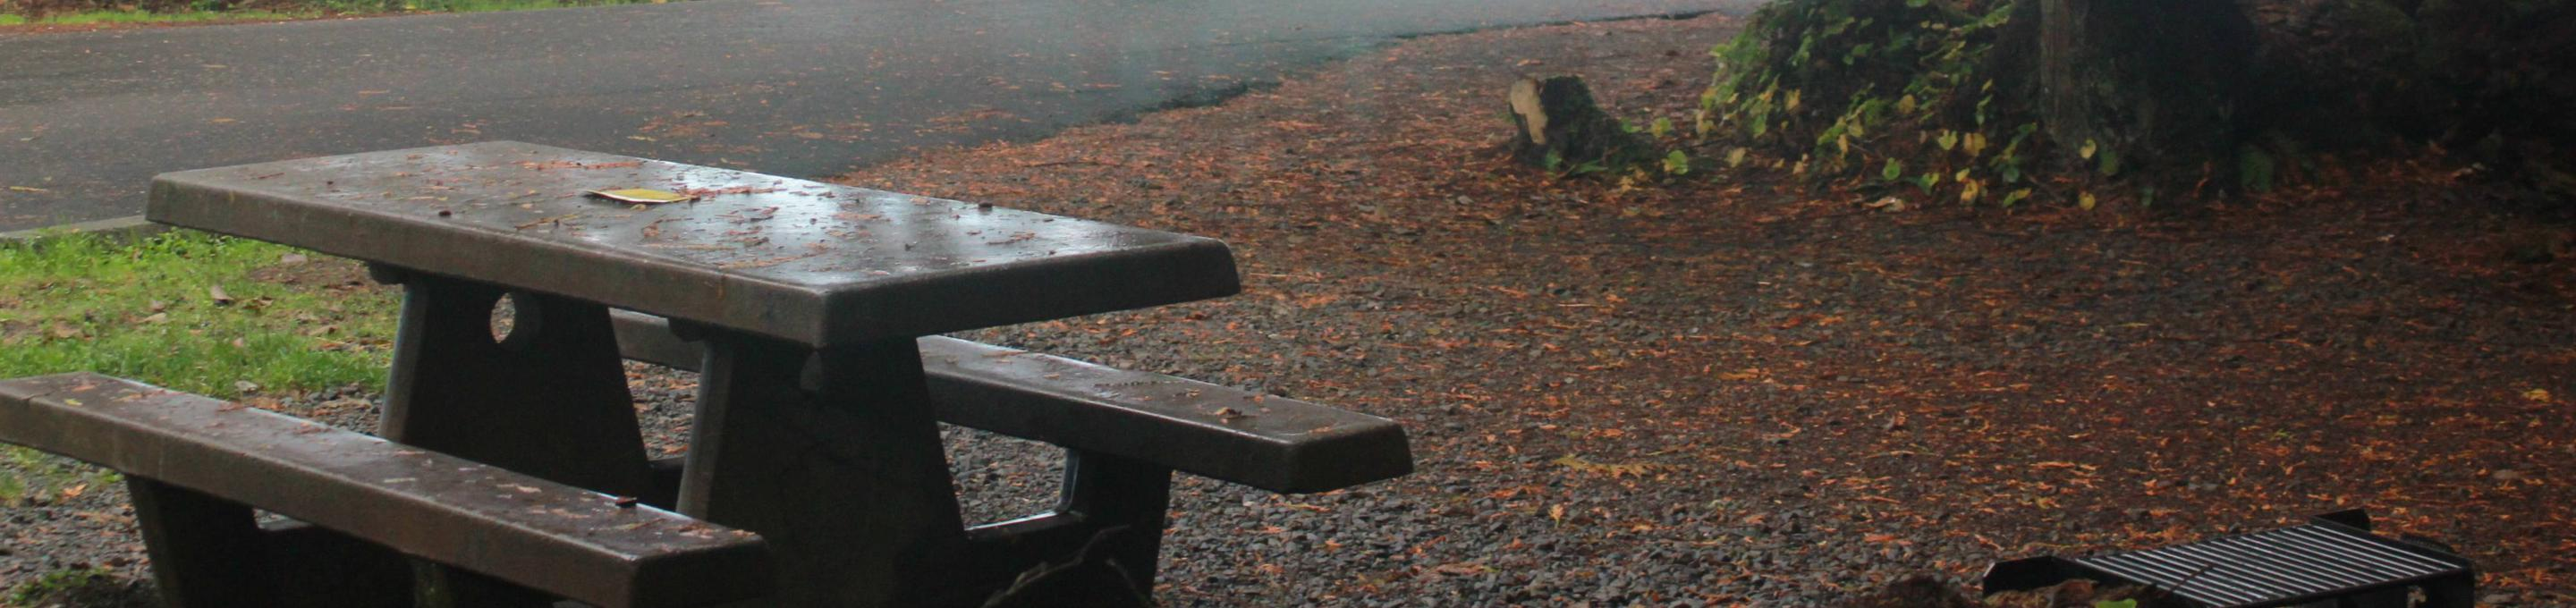 Picture of campsite with picnic table. Campsite D9